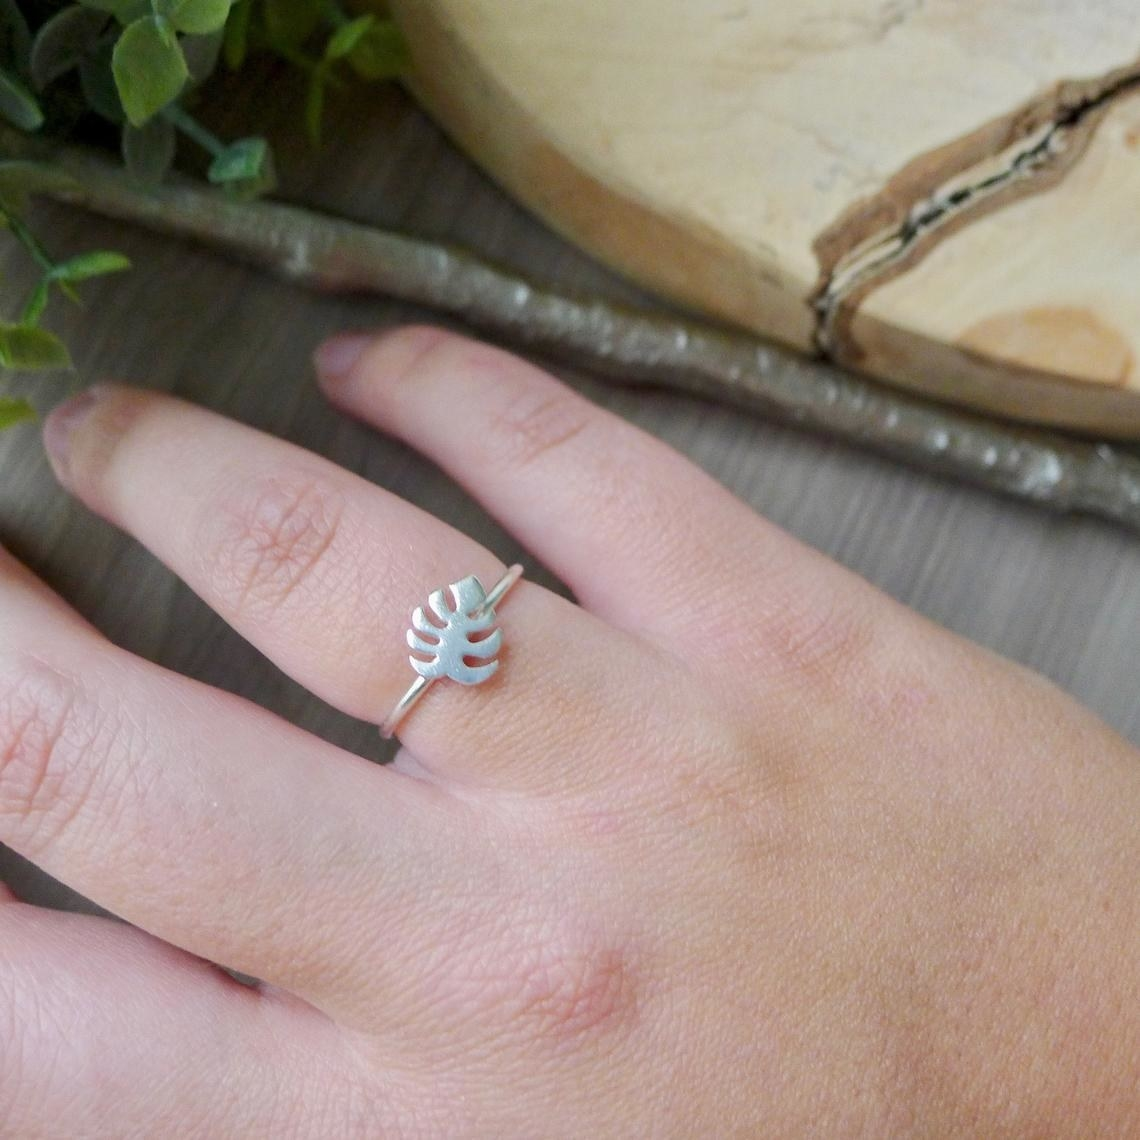 A person wearing the monstera ring